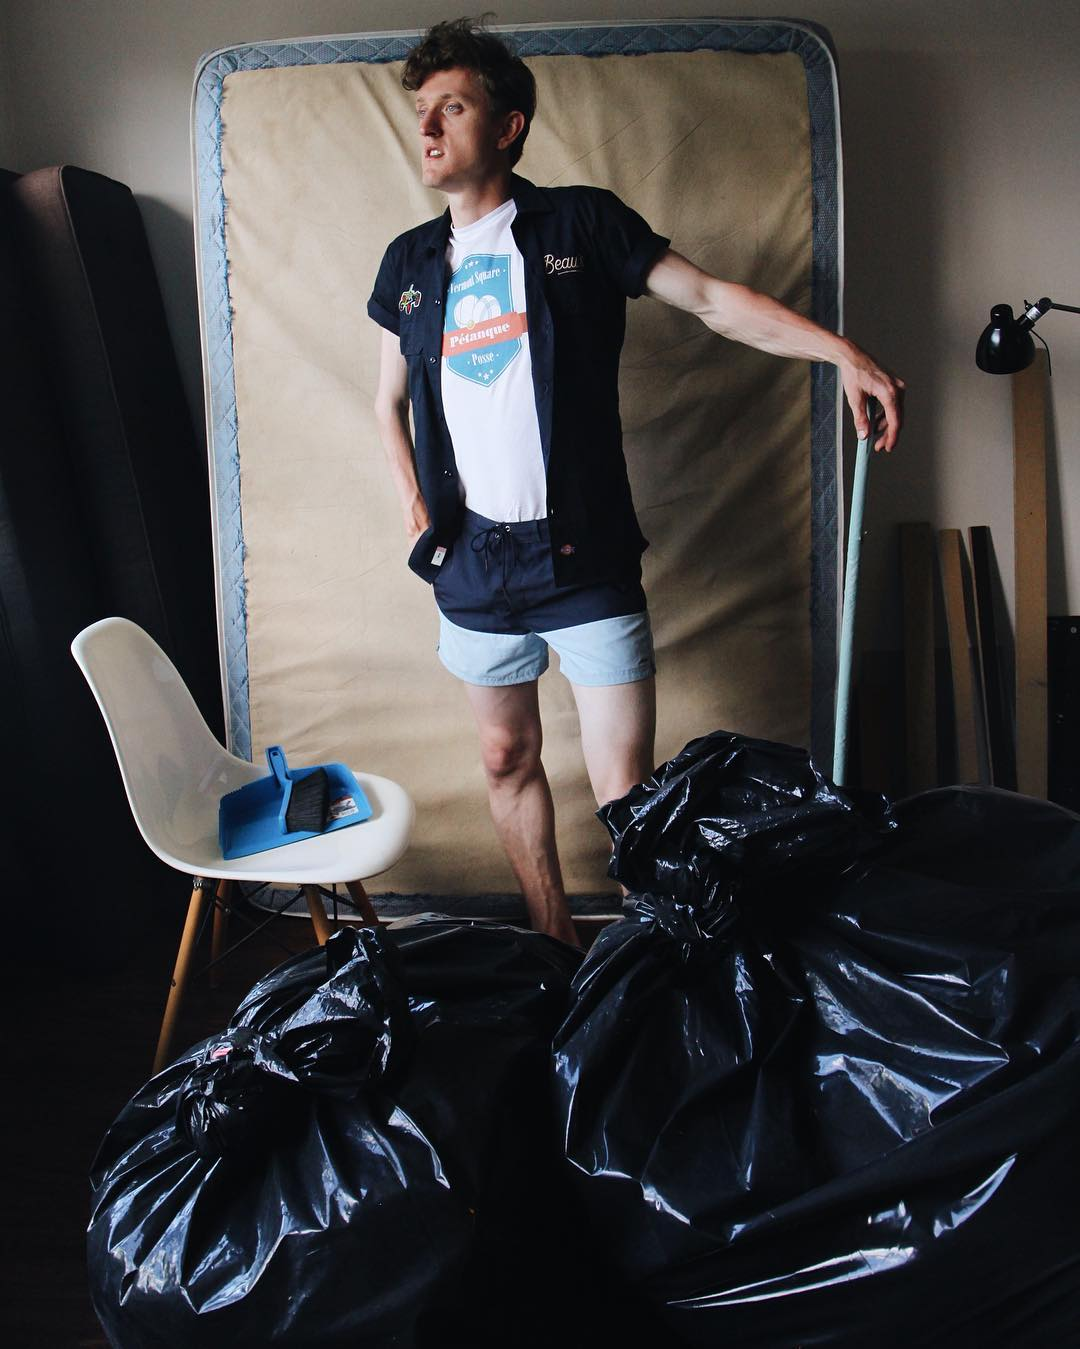 Cleaning up apartment